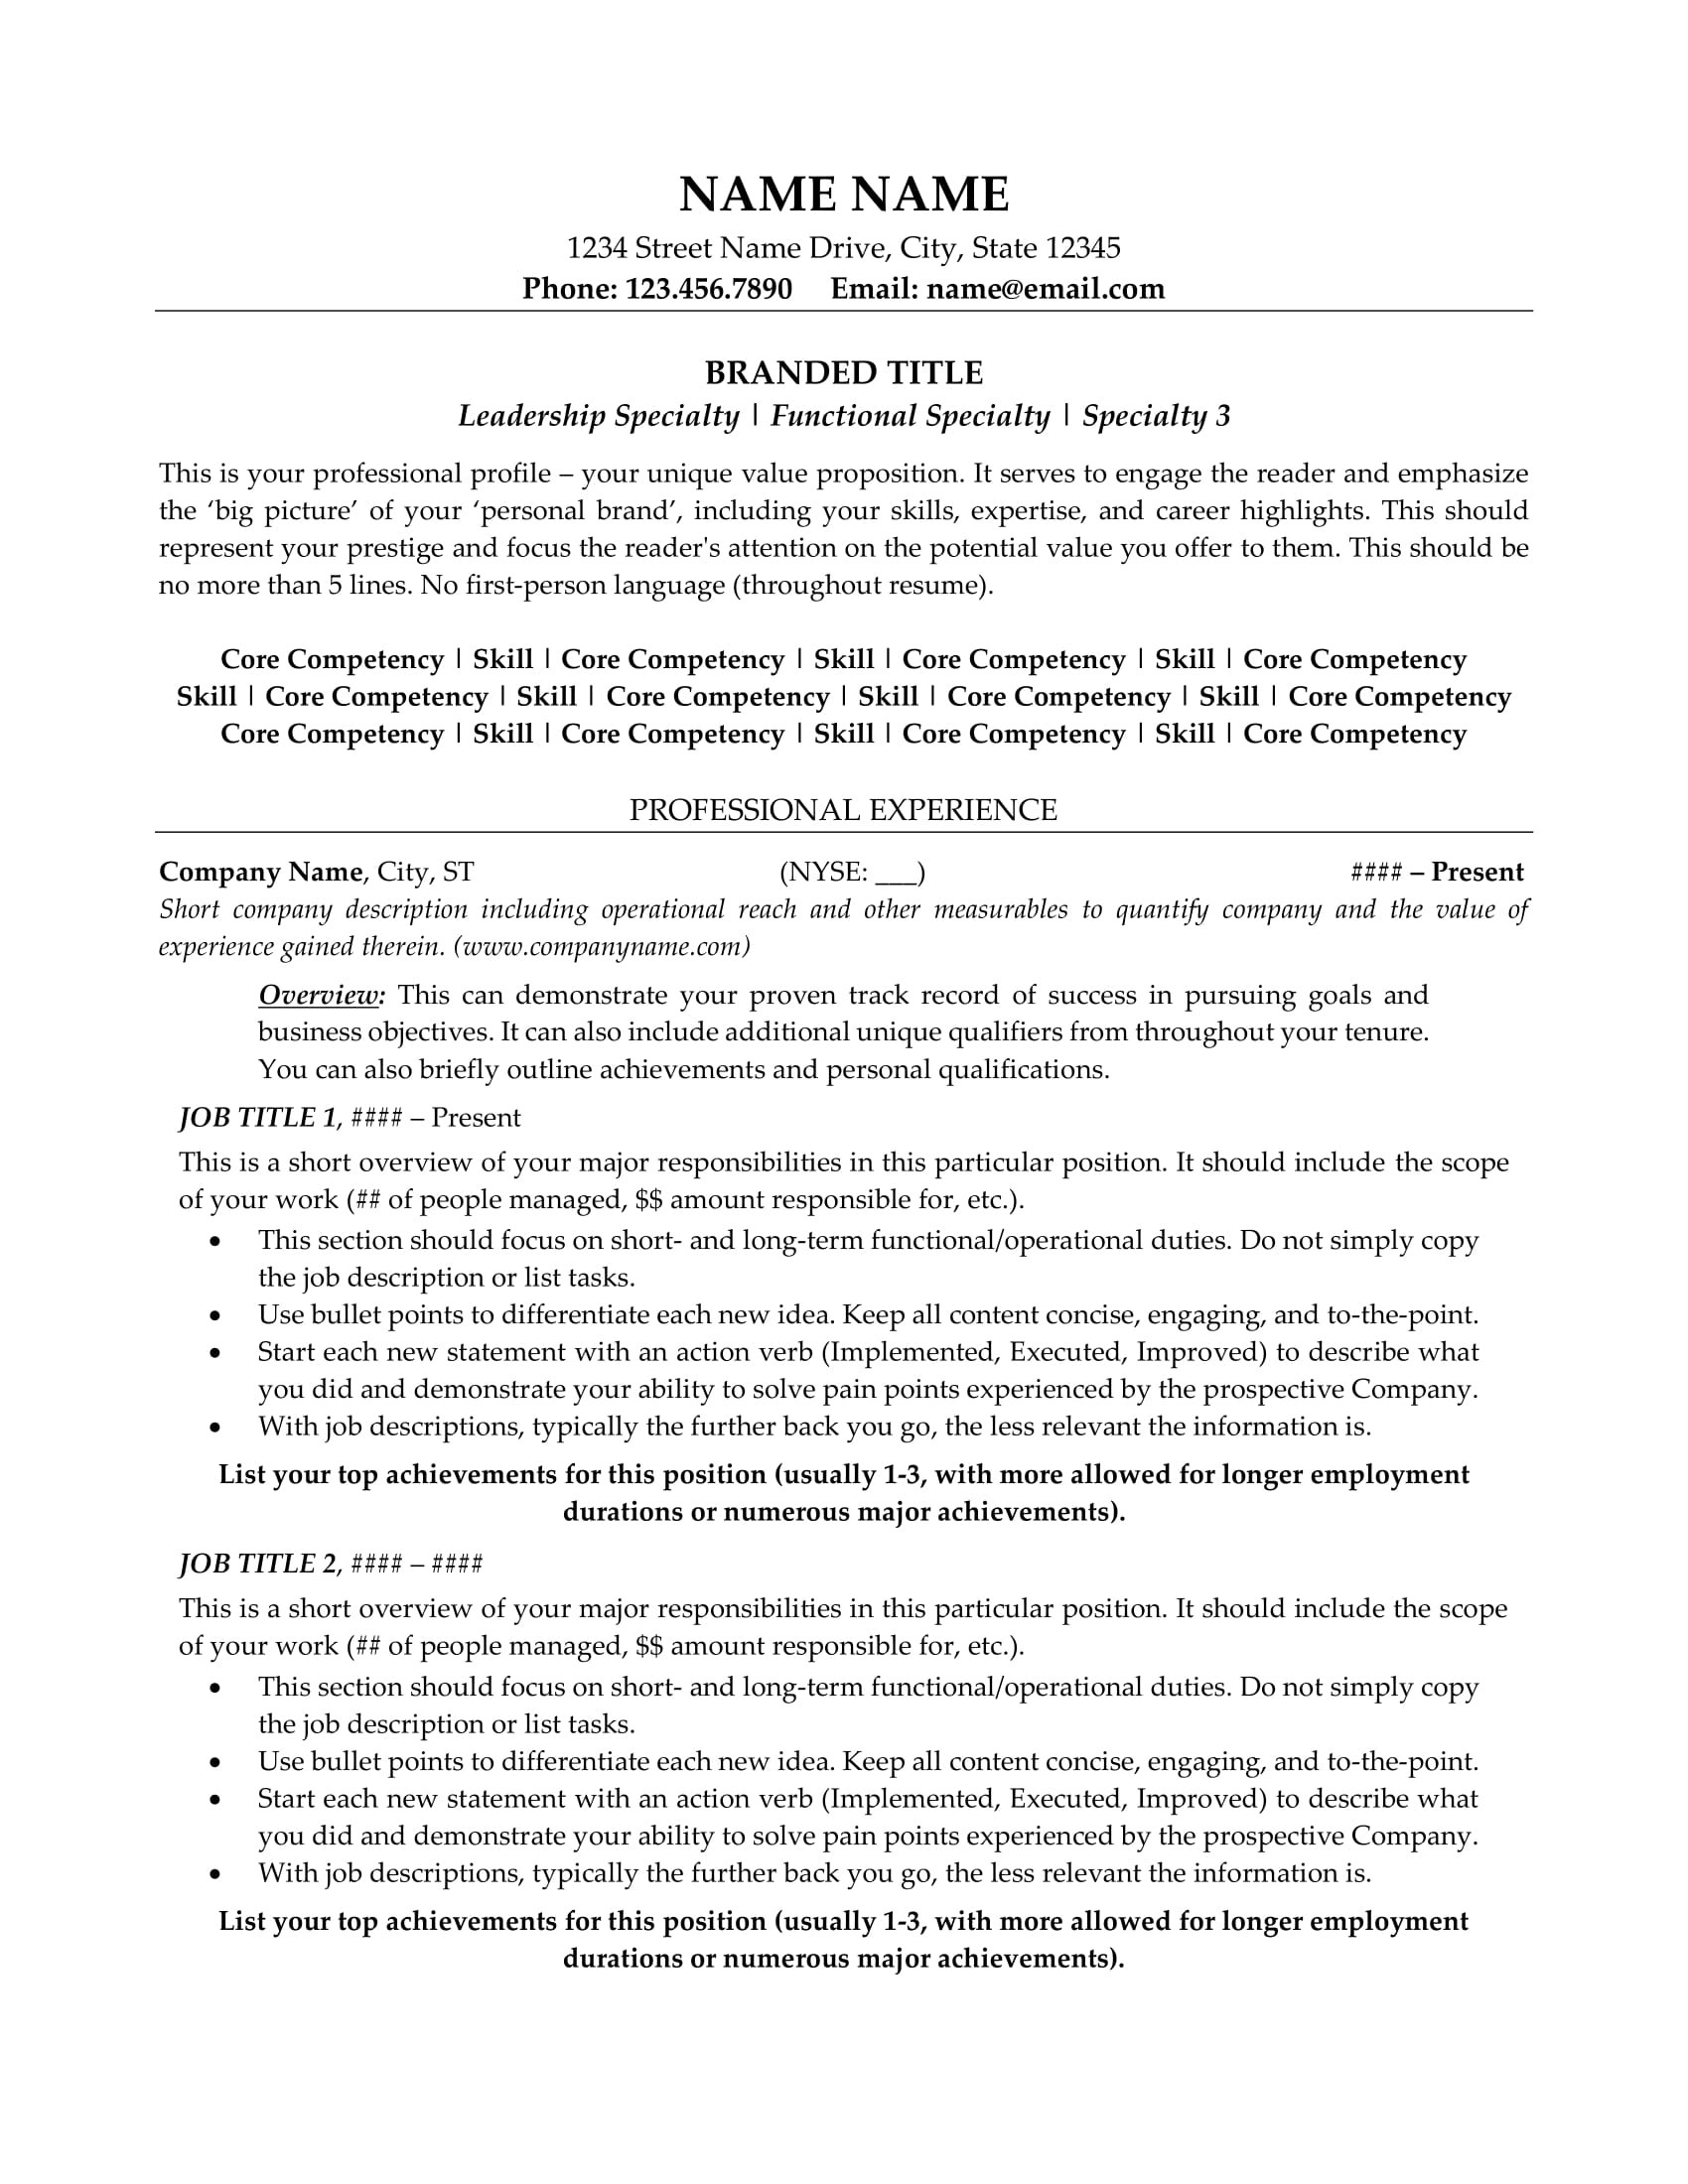 young professional resume template  Resume Example, Resume Sample, All-Level Resumes, Resume ..